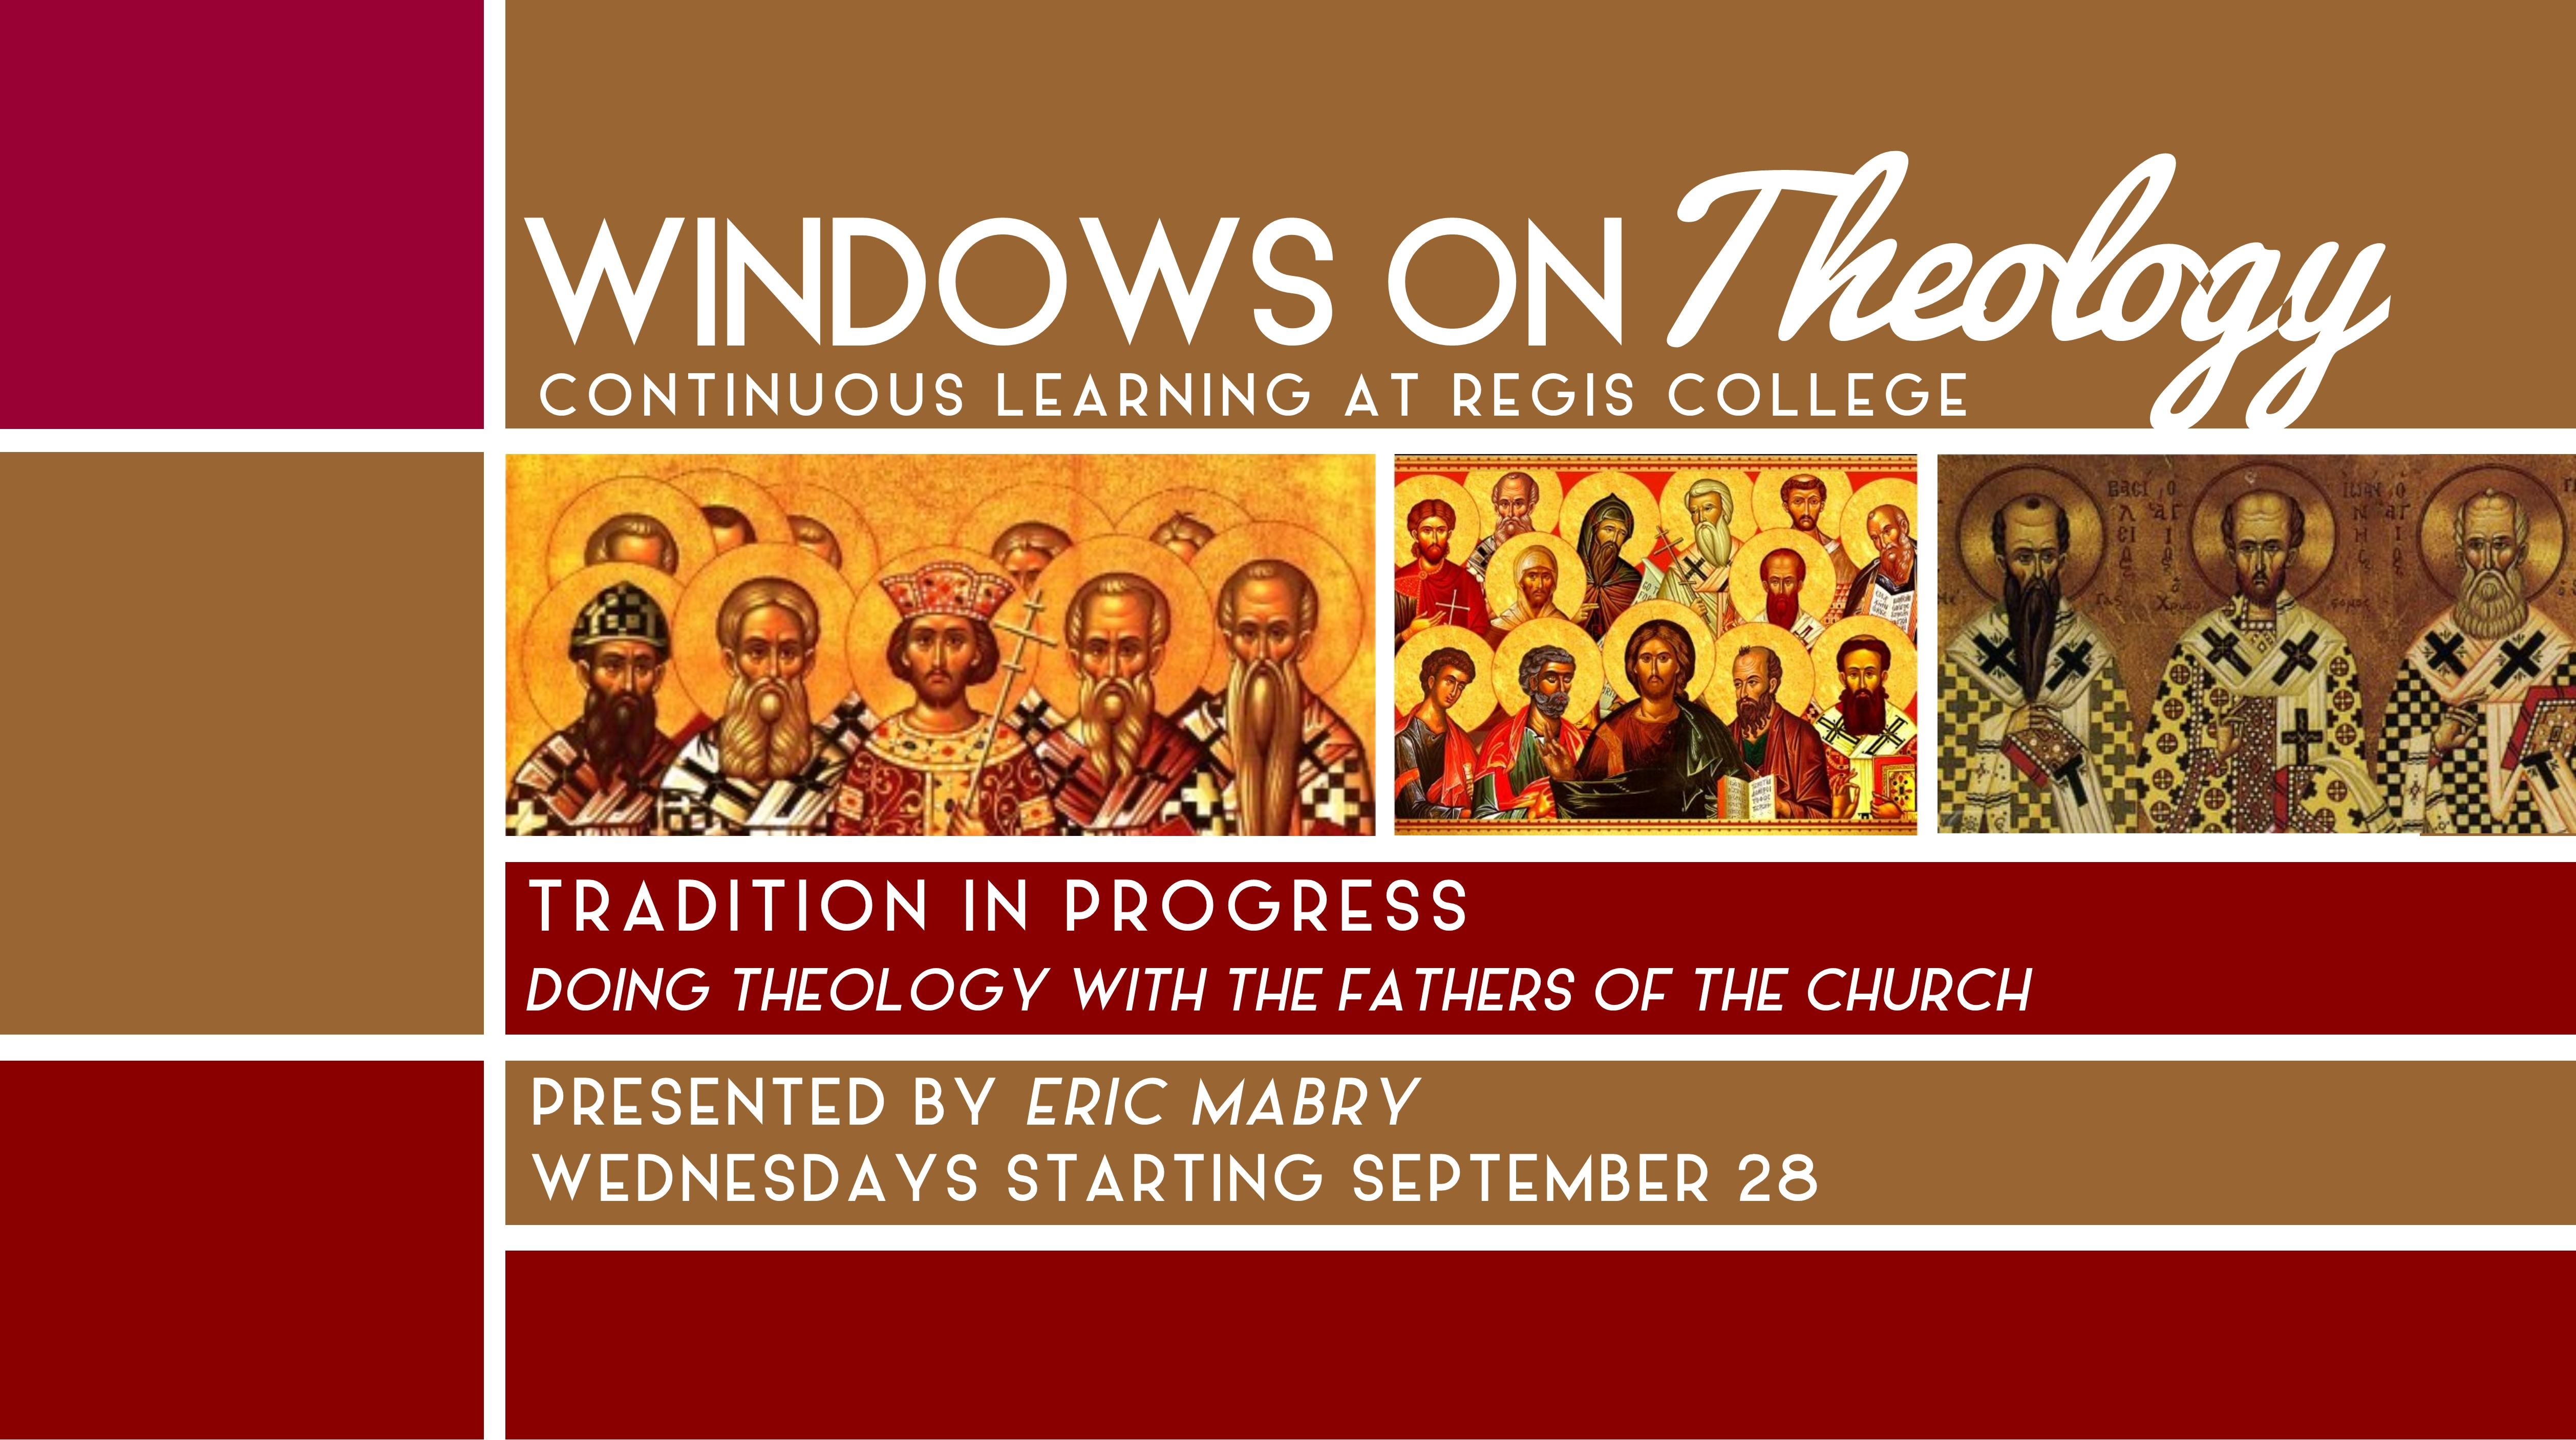 Regis College Windows on Theology Continuous Learning Series